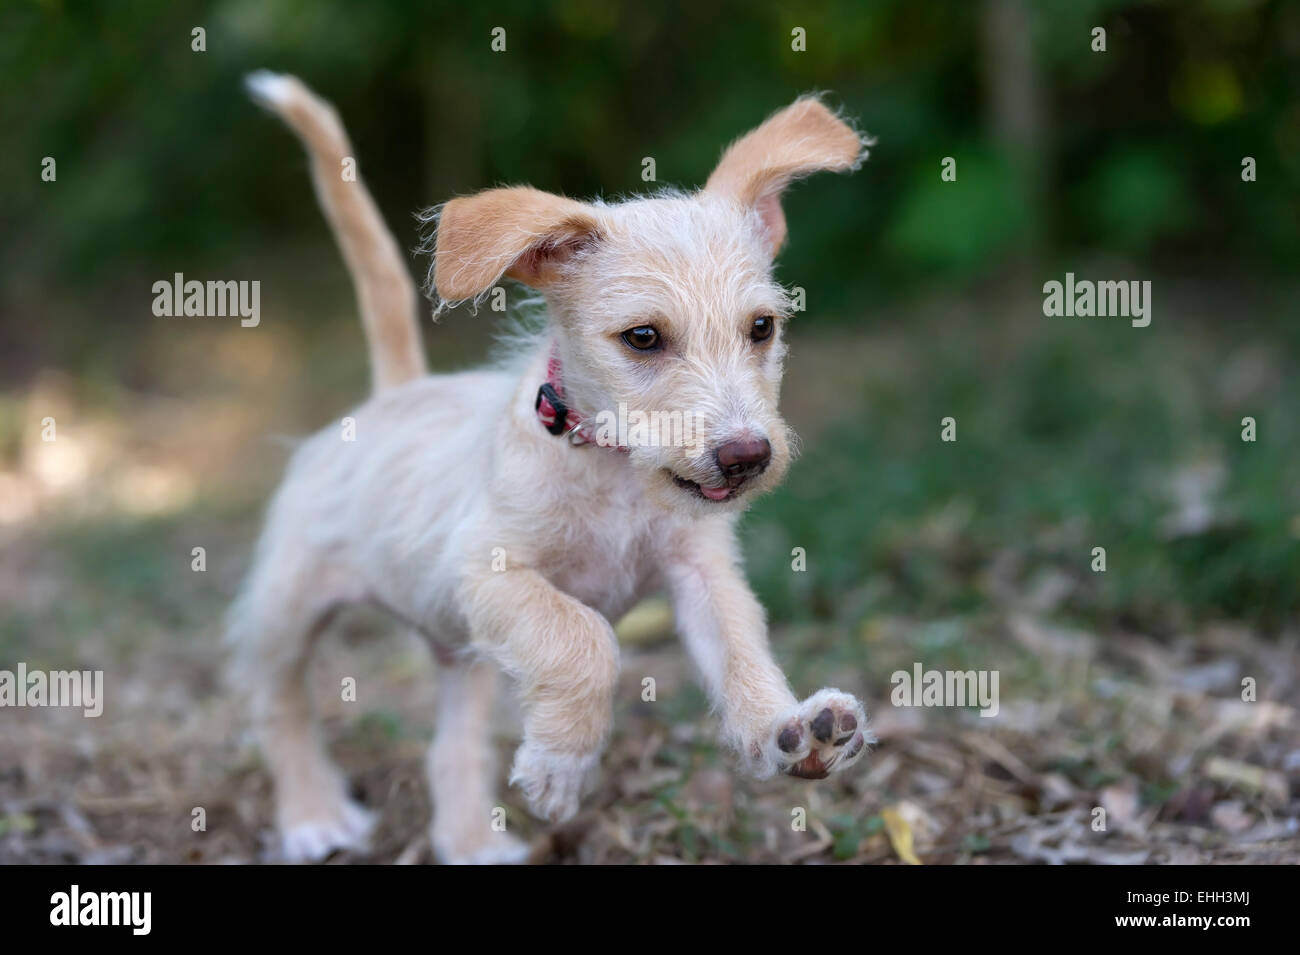 A cute playful puppy is running in the park. - Stock Image